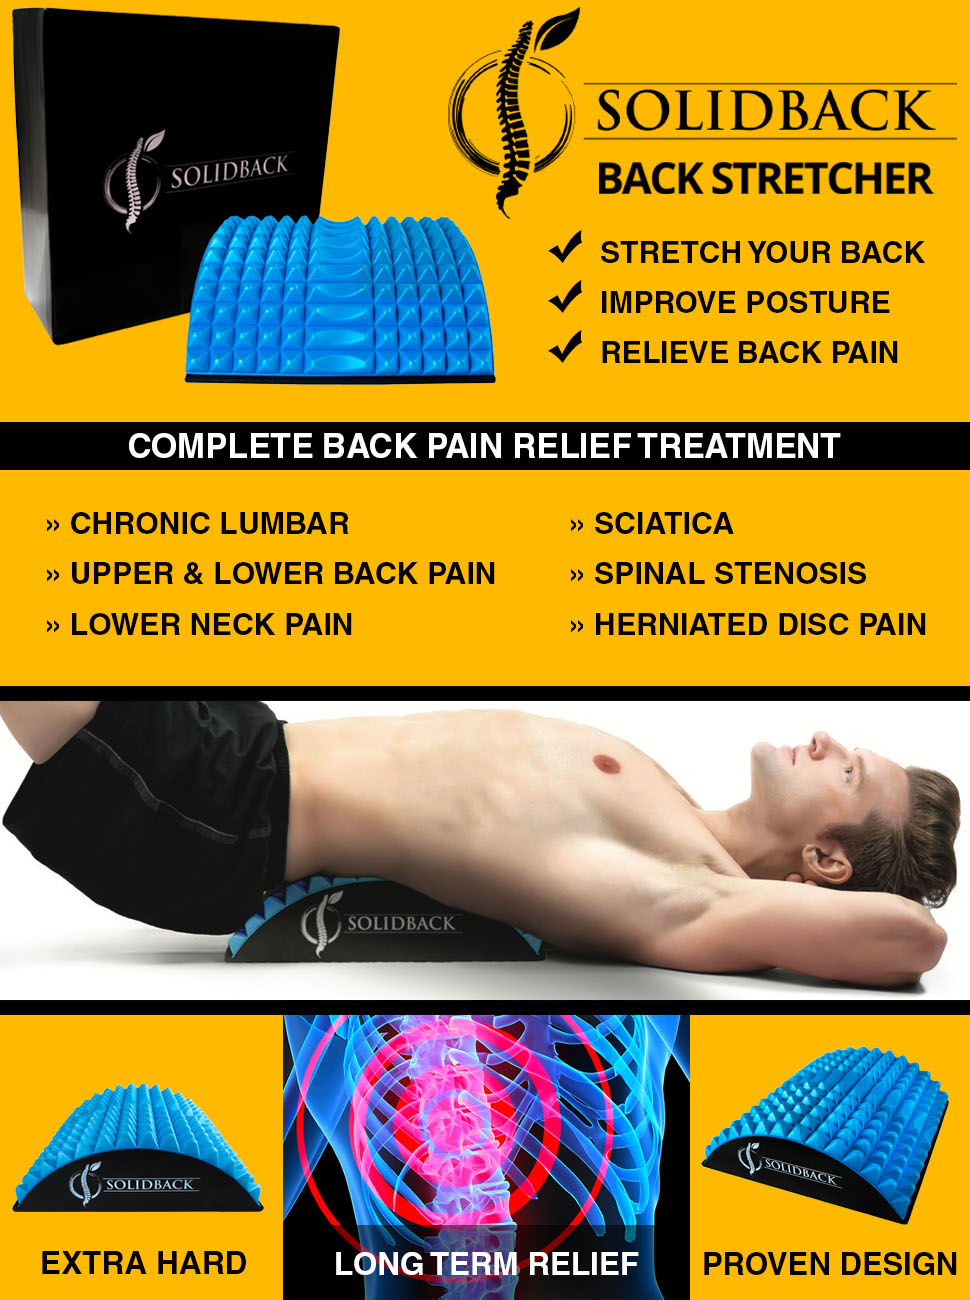 Details about  /Solidback Lower Back Pain Relief Treatment Stretcher Chronic Lumbar Support Disc